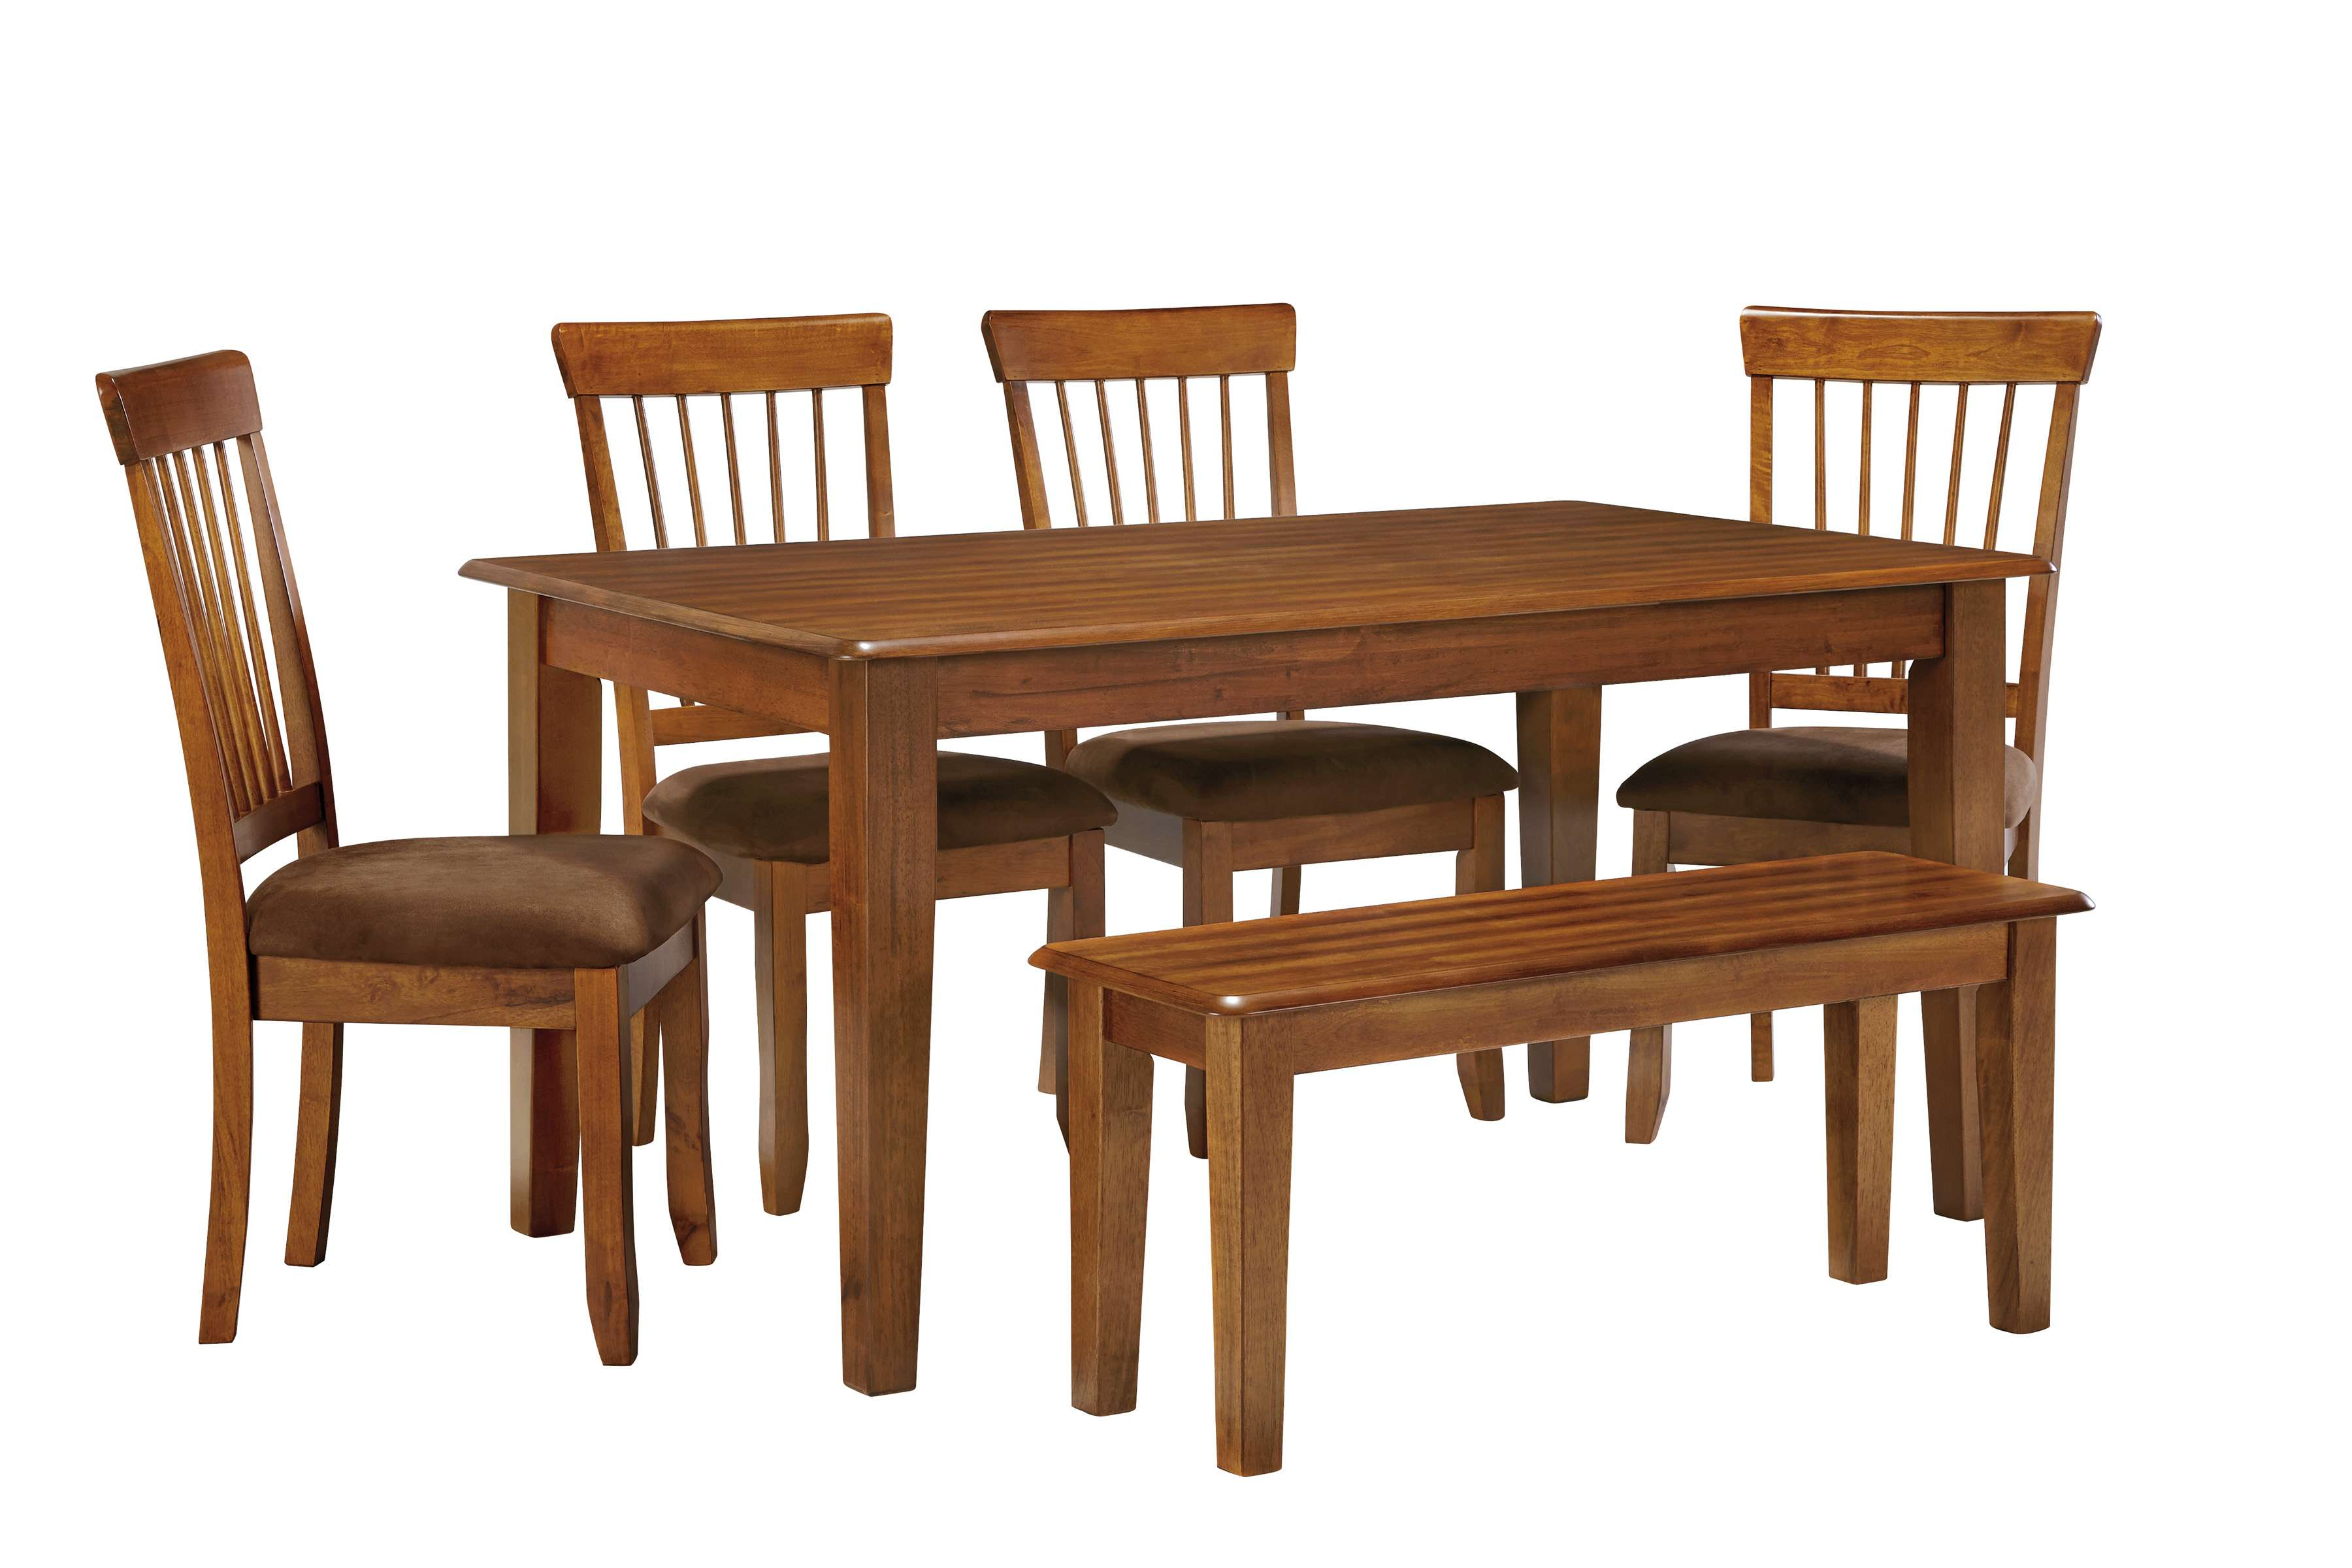 Signature Designashley D199 01, D199 01, D199 25, D199 00 In 2018 Hood Canal 3 Piece Dining Sets (Image 16 of 20)